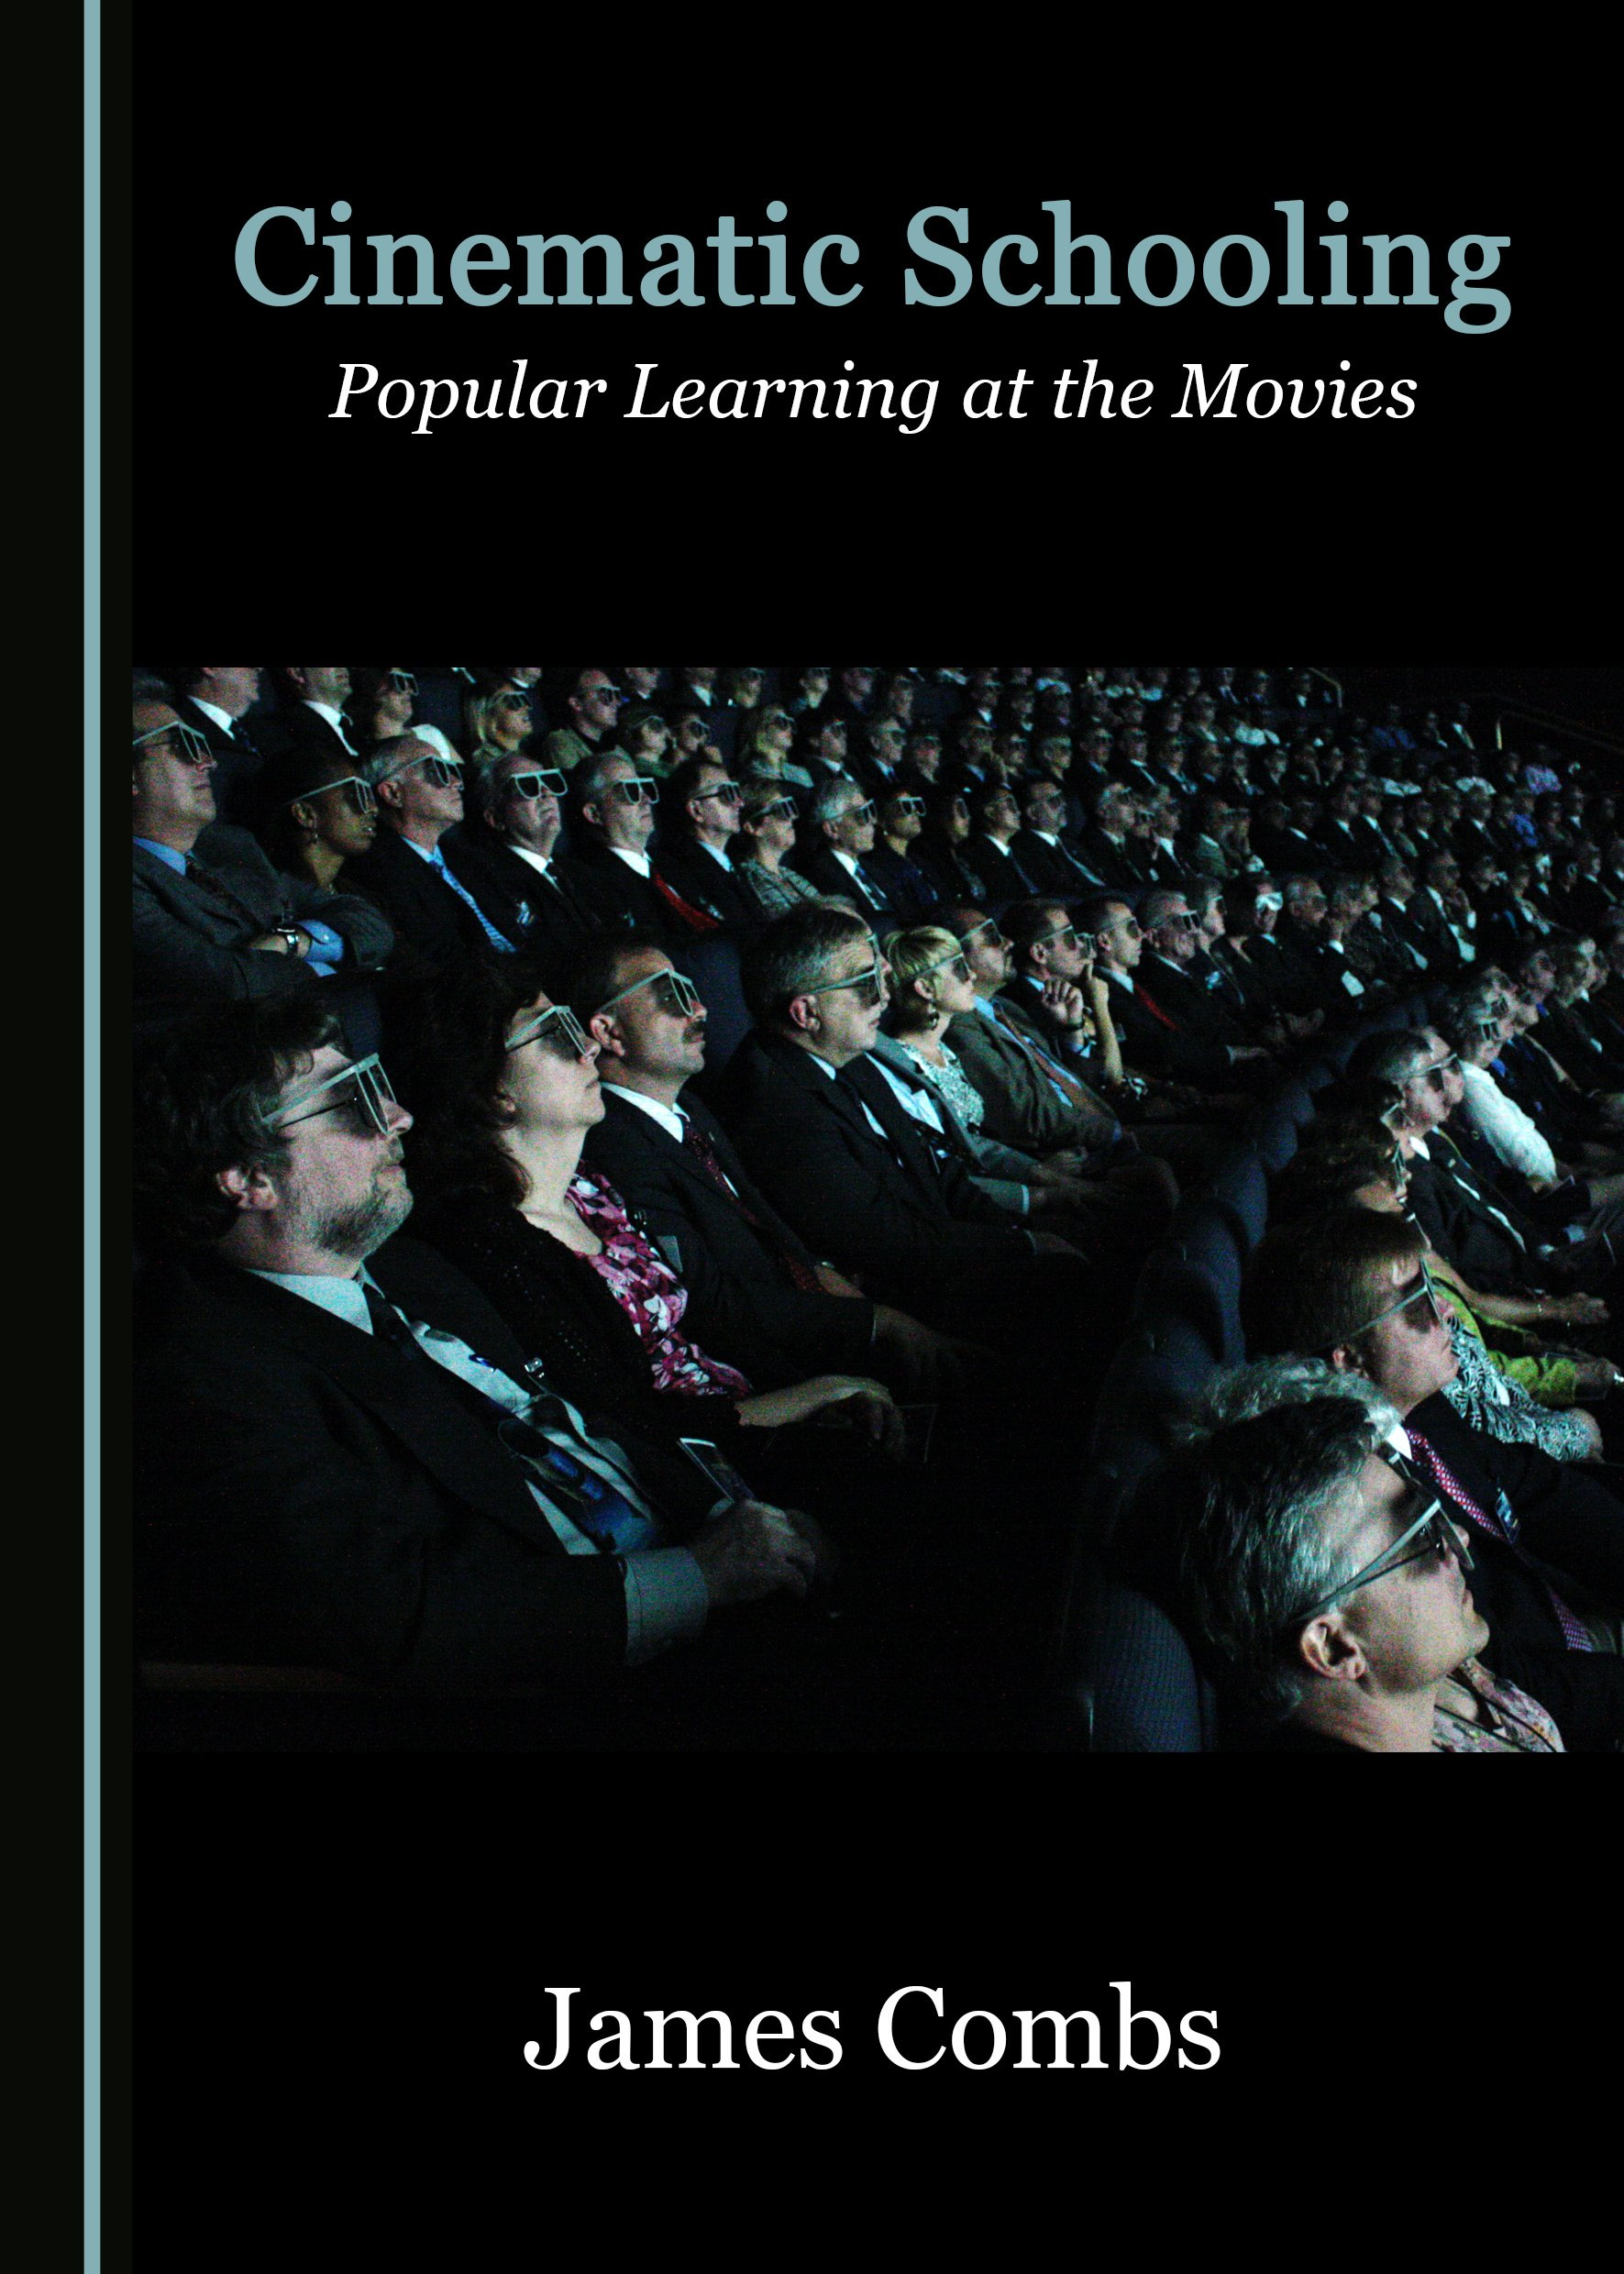 Cinematic Schooling: Popular Learning at the Movies